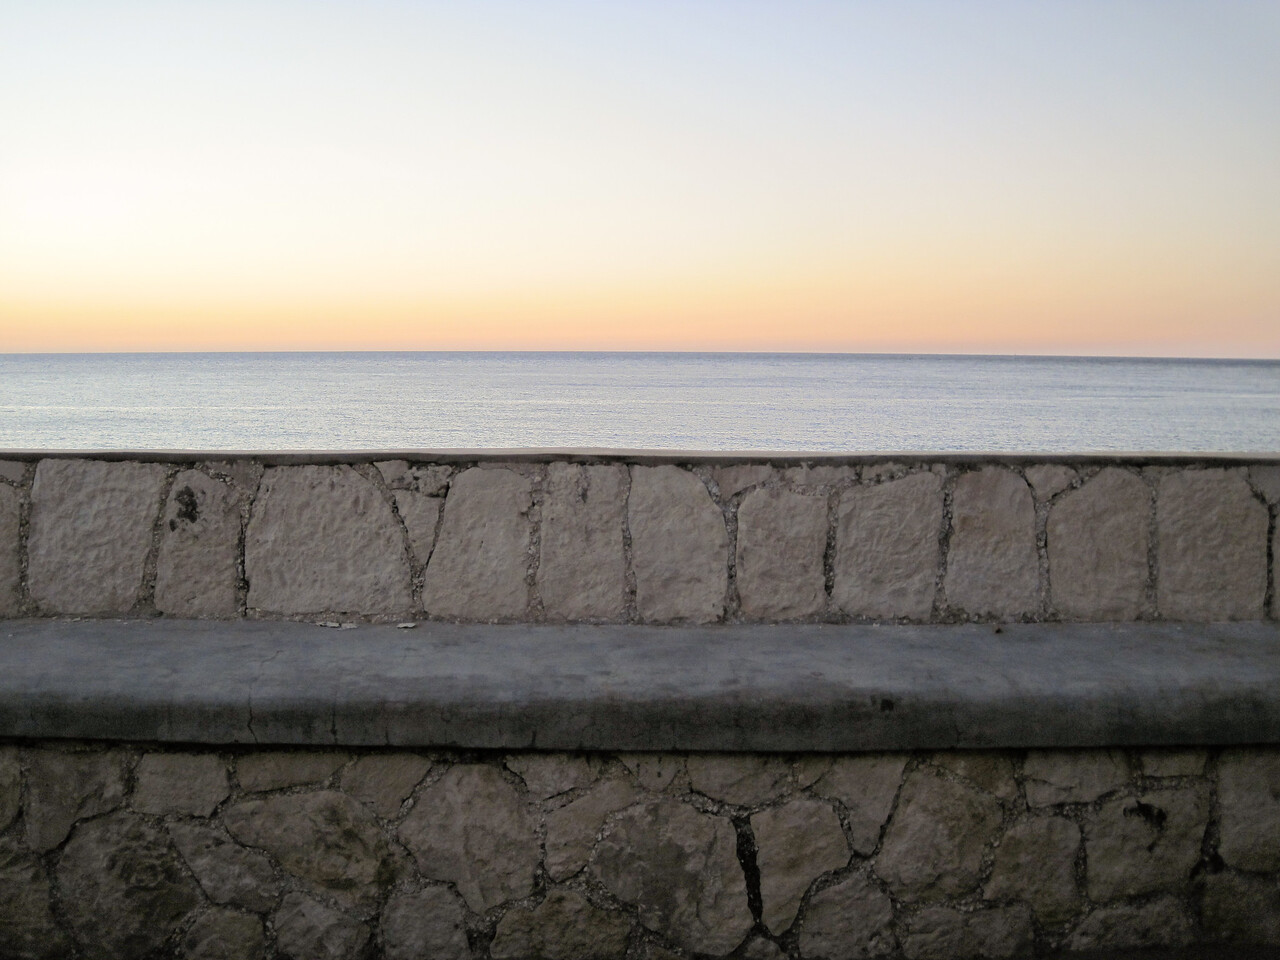 Horizon from bench at The Sands